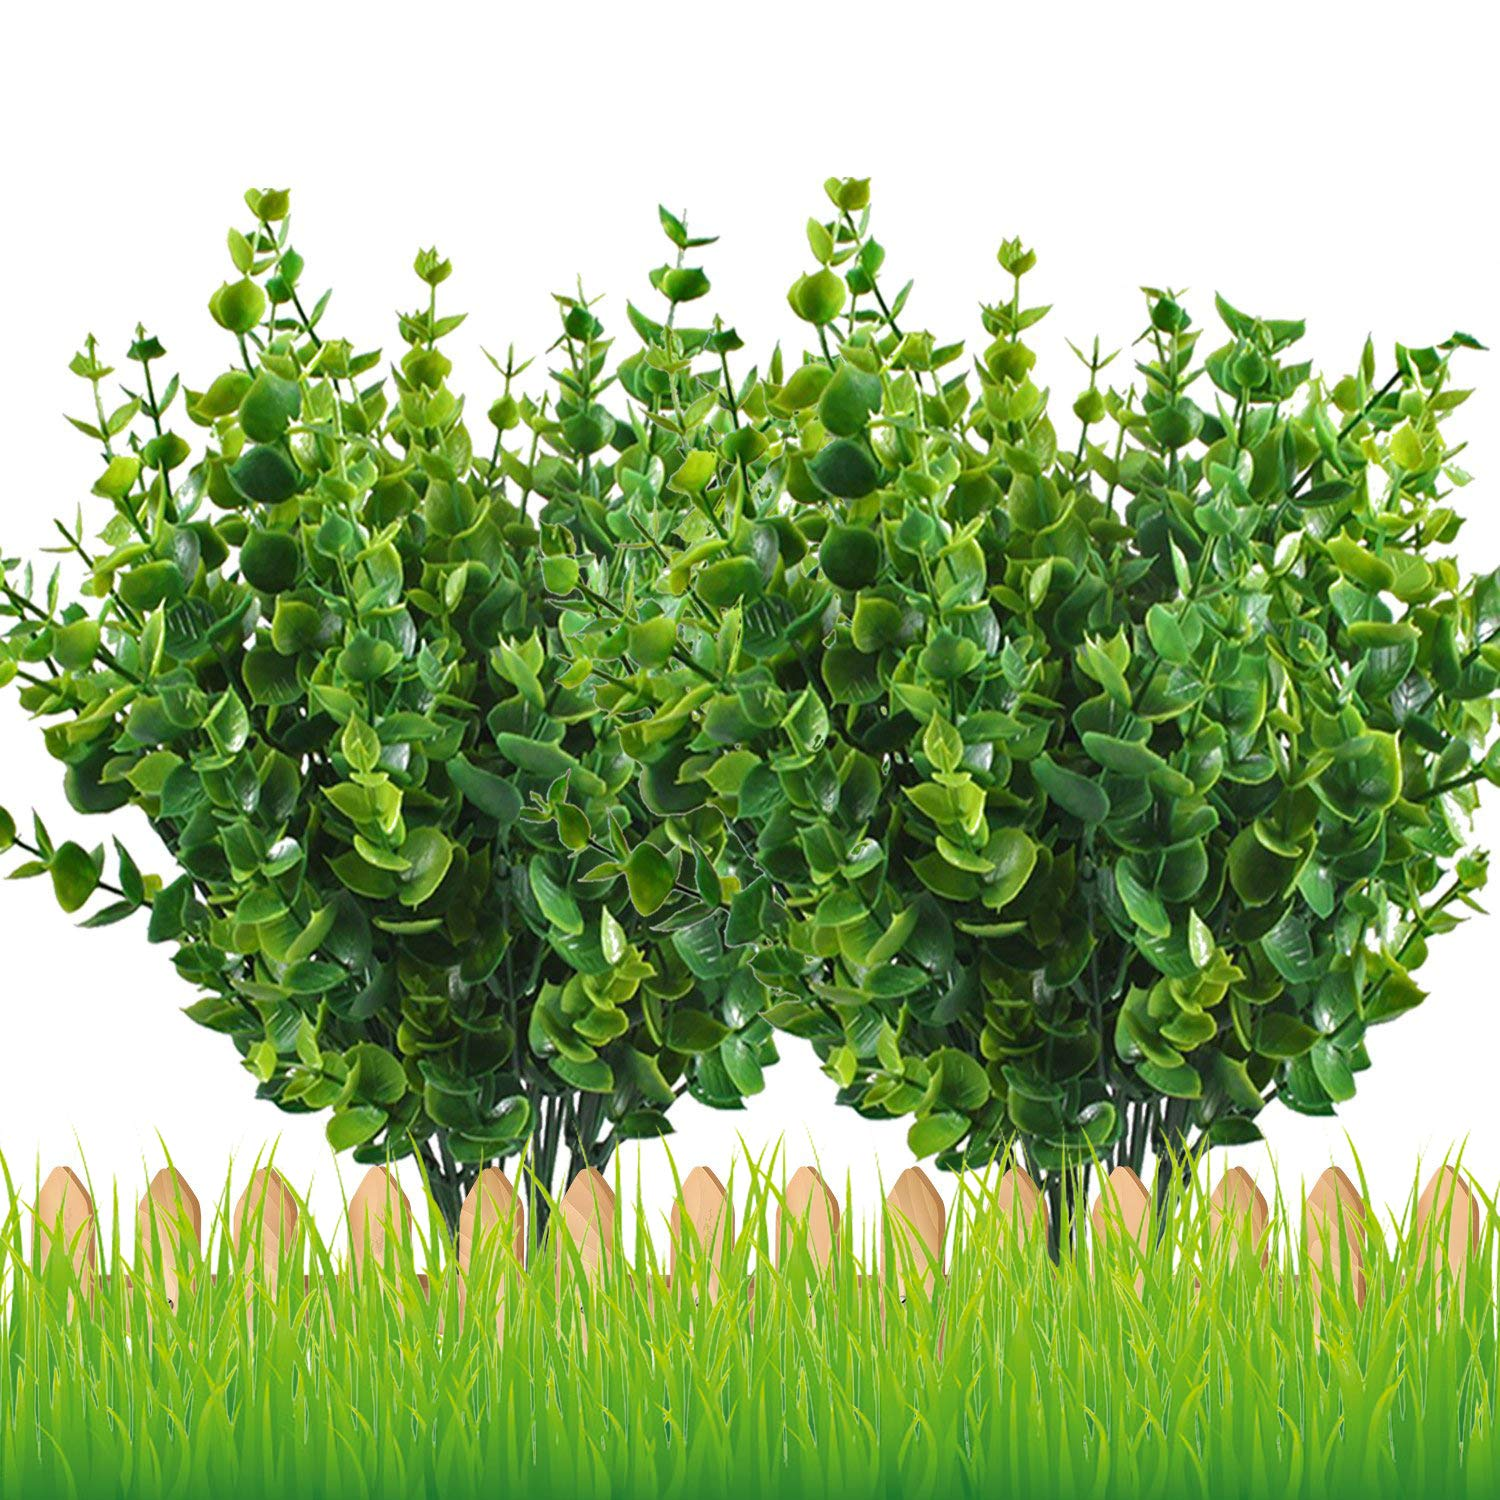 Newstart Artificial Shrubs Lifelike Fake Greenery Plants Flowers